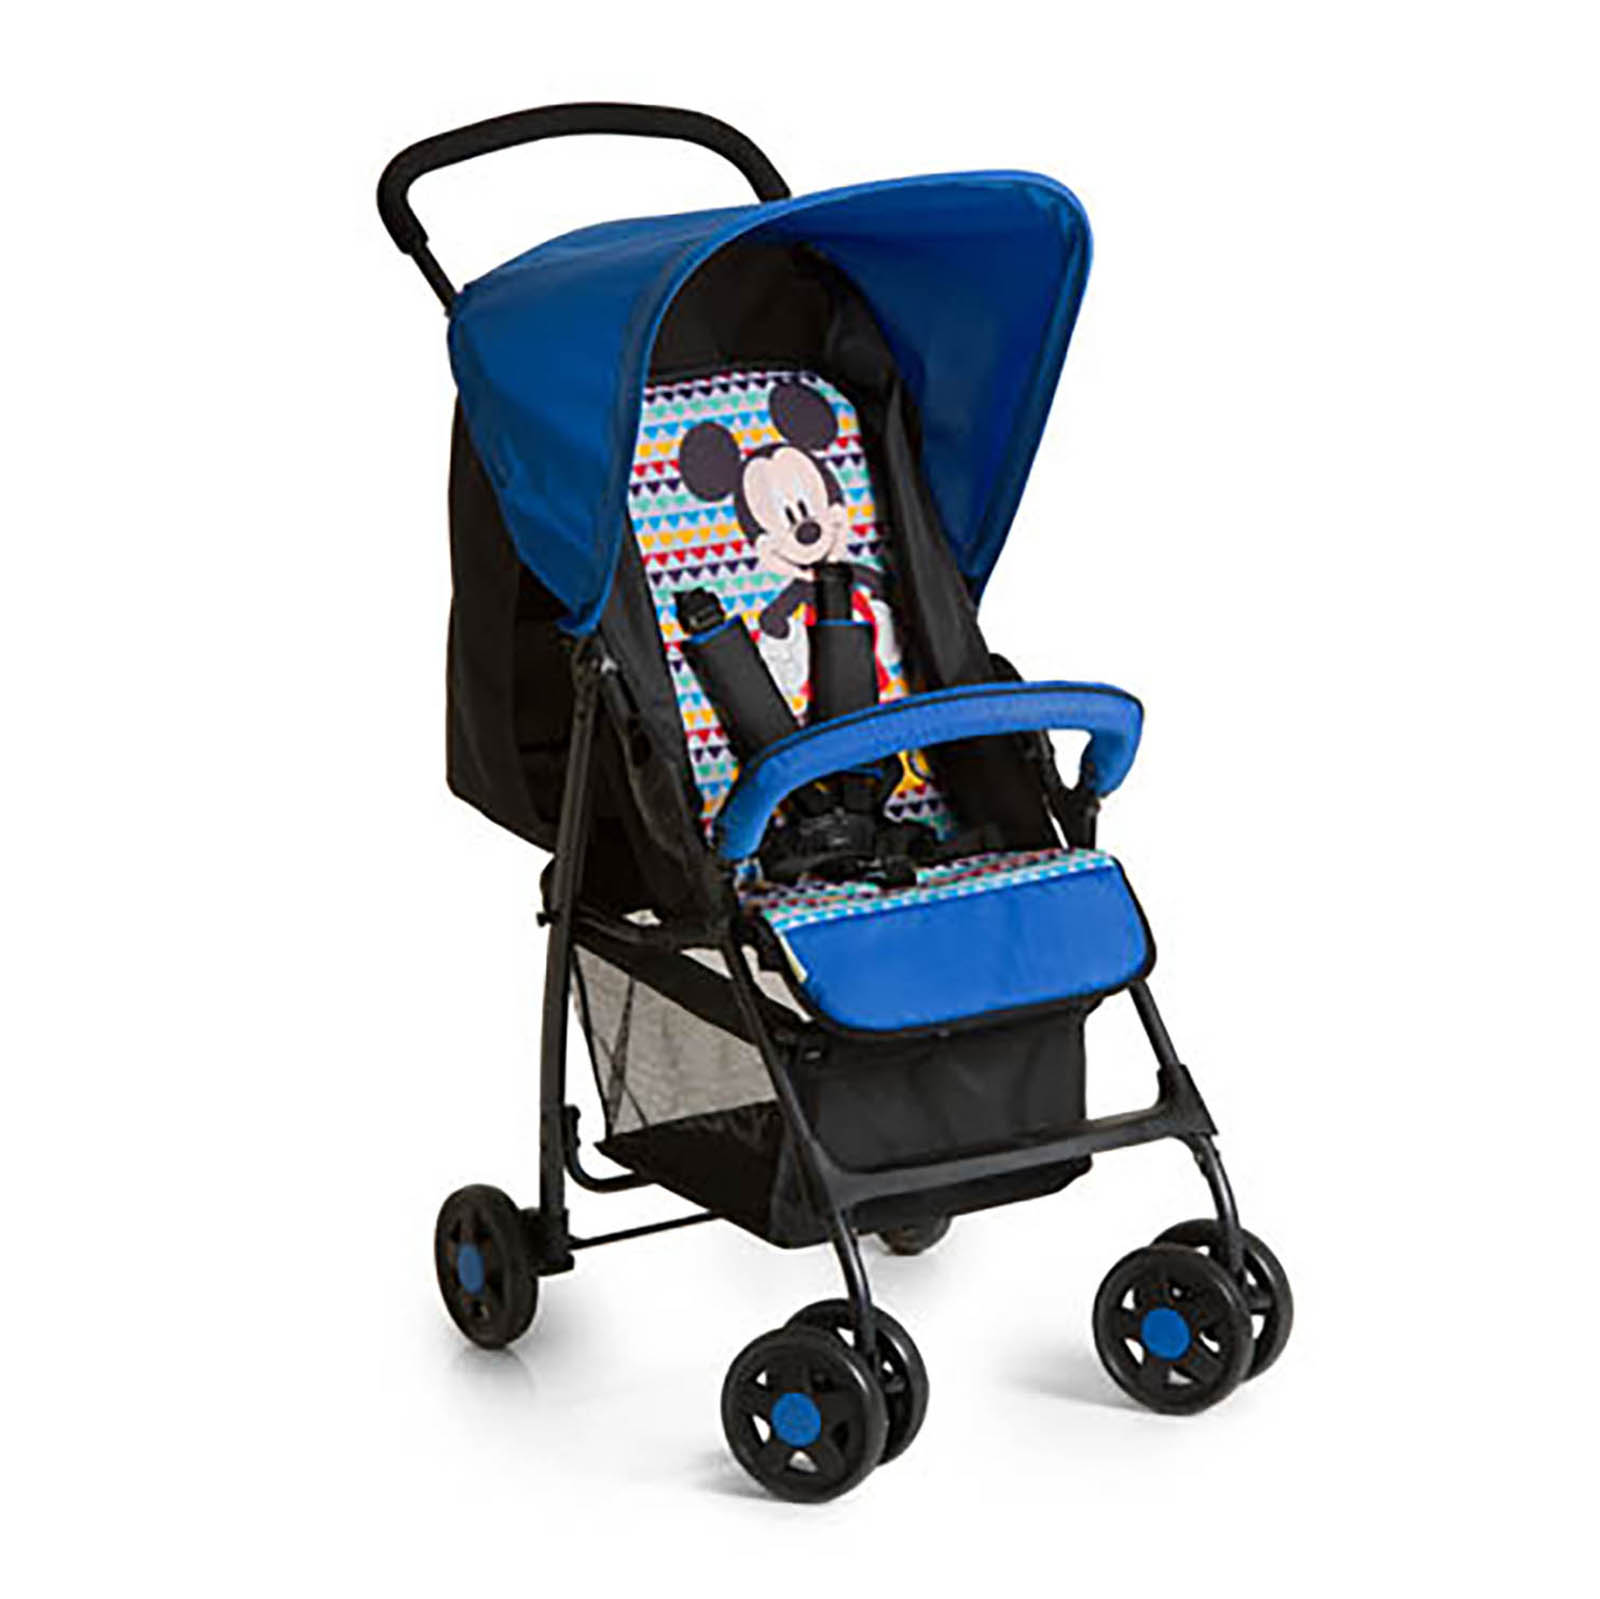 hauck mickey geo blue lightweight baby sport pushchair stroller with raincover ebay. Black Bedroom Furniture Sets. Home Design Ideas